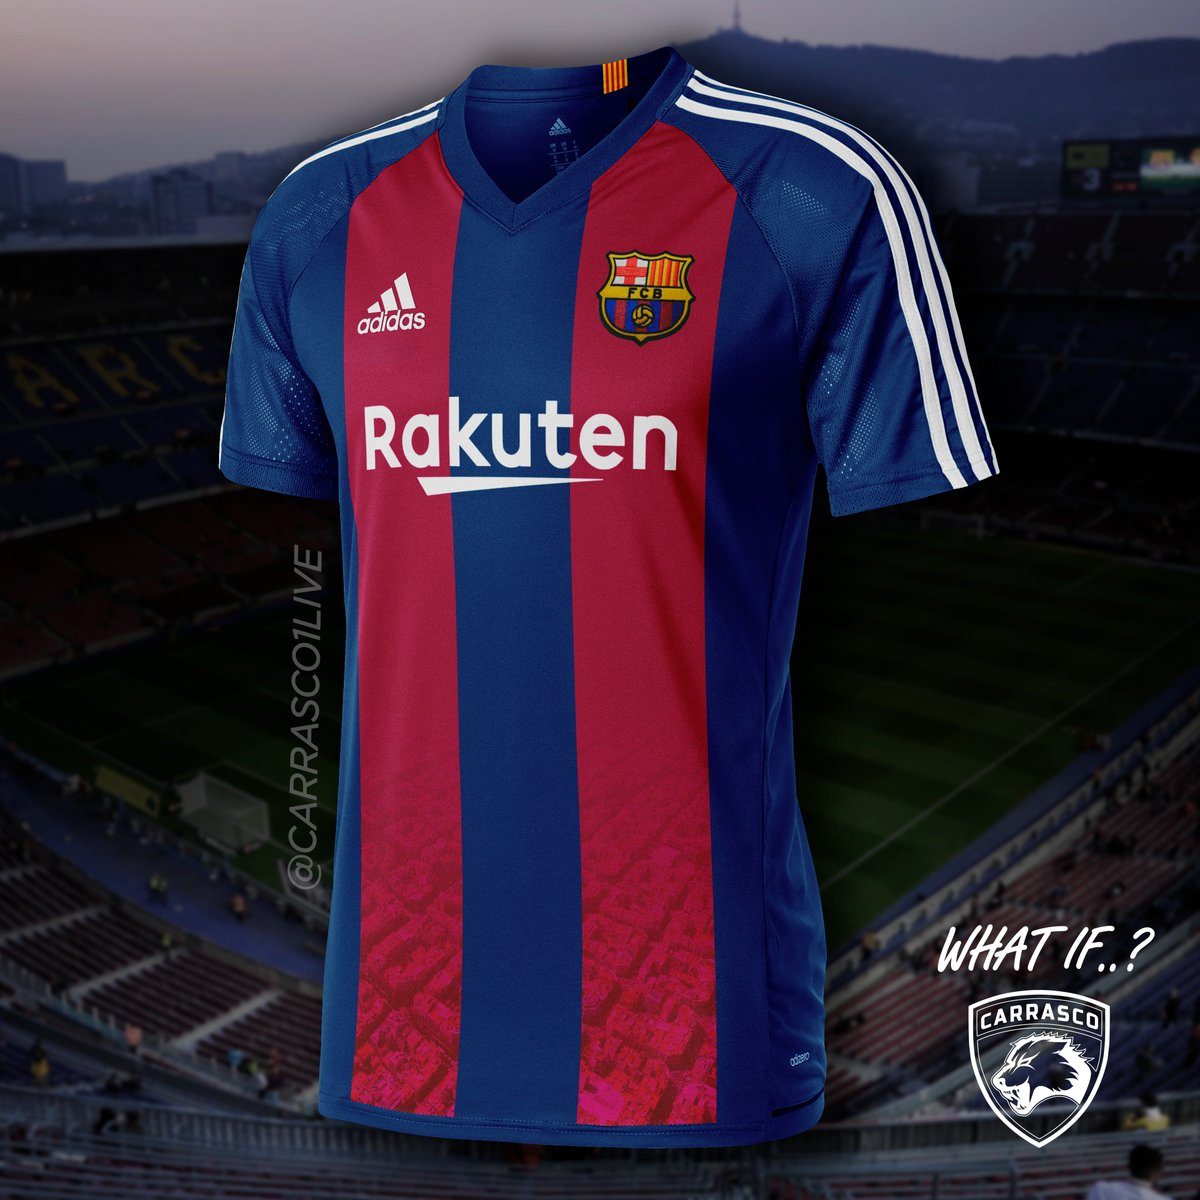 Jose Carrasco Auf Twitter Comienzo Mi Serie What If La Liga Nike Adidas Fc Barcelona Adidas Concept Https T Co Lu3hbozmq4 Mockup By Casakeros Https T Co 46njrnxw81